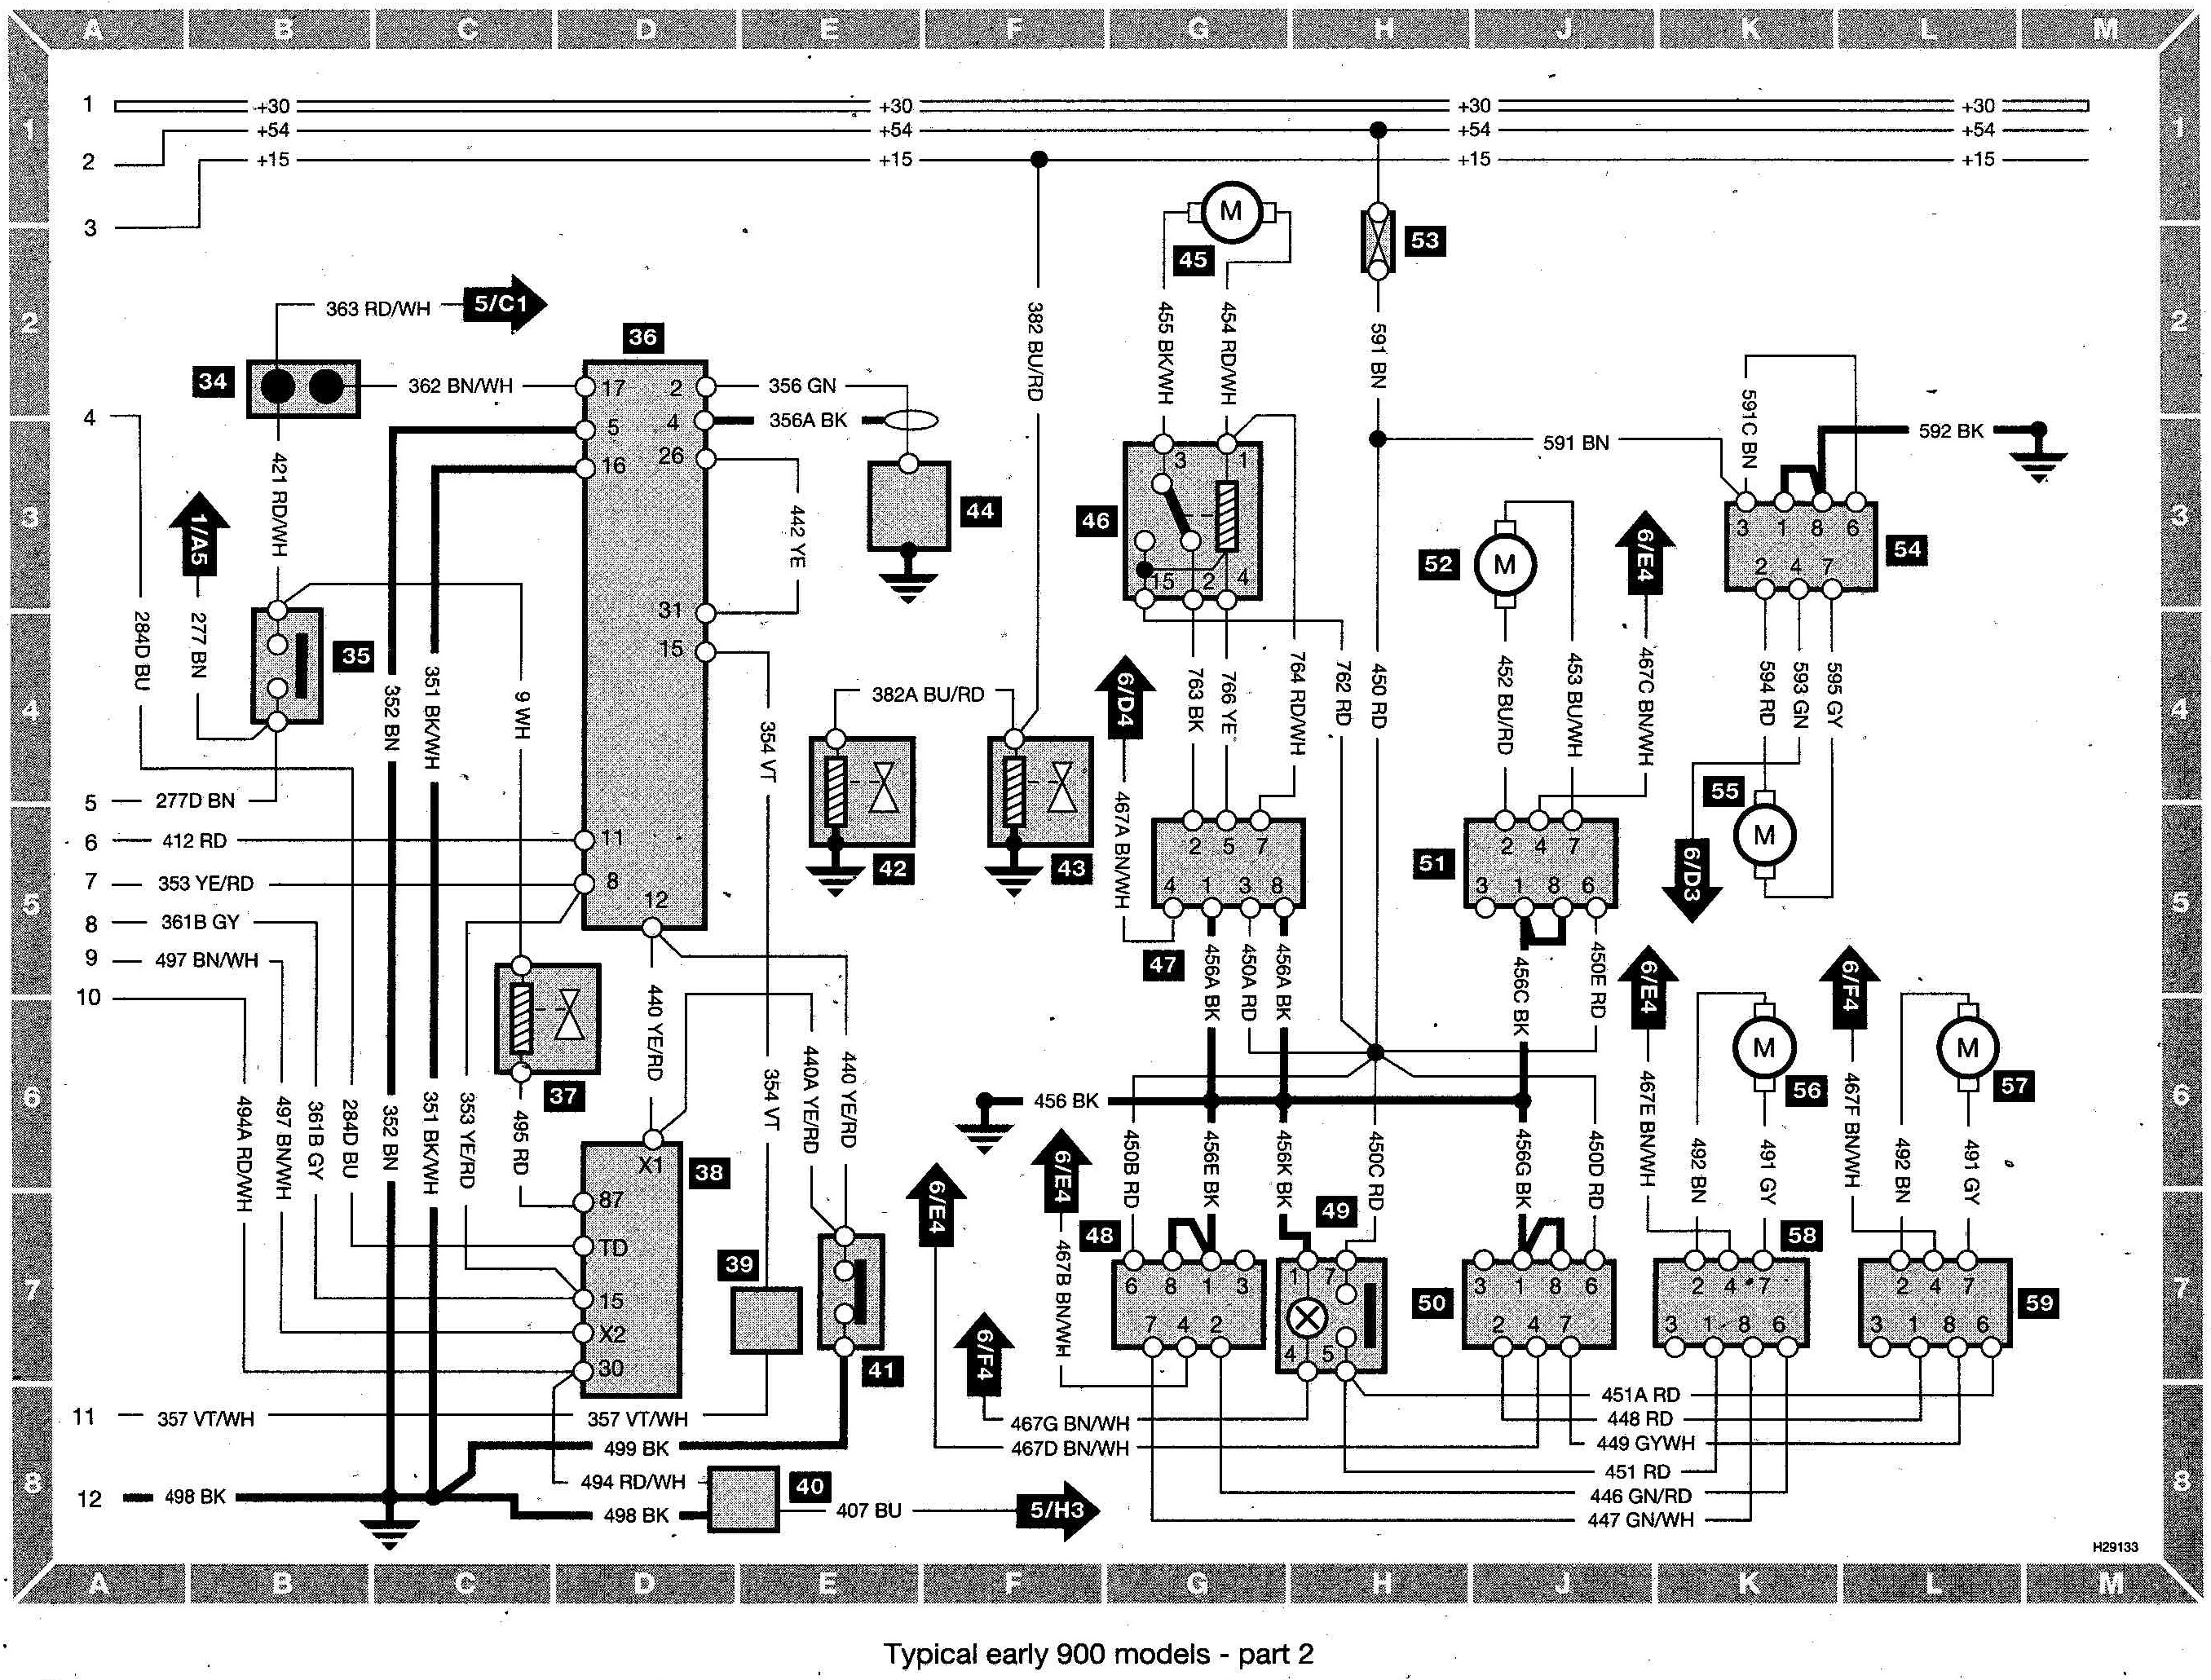 2006 Saab 9 3 Wiring Diagram Great Design Of 1992 Ford Bronco Fuse Box Stereo Sound Parts Headlight